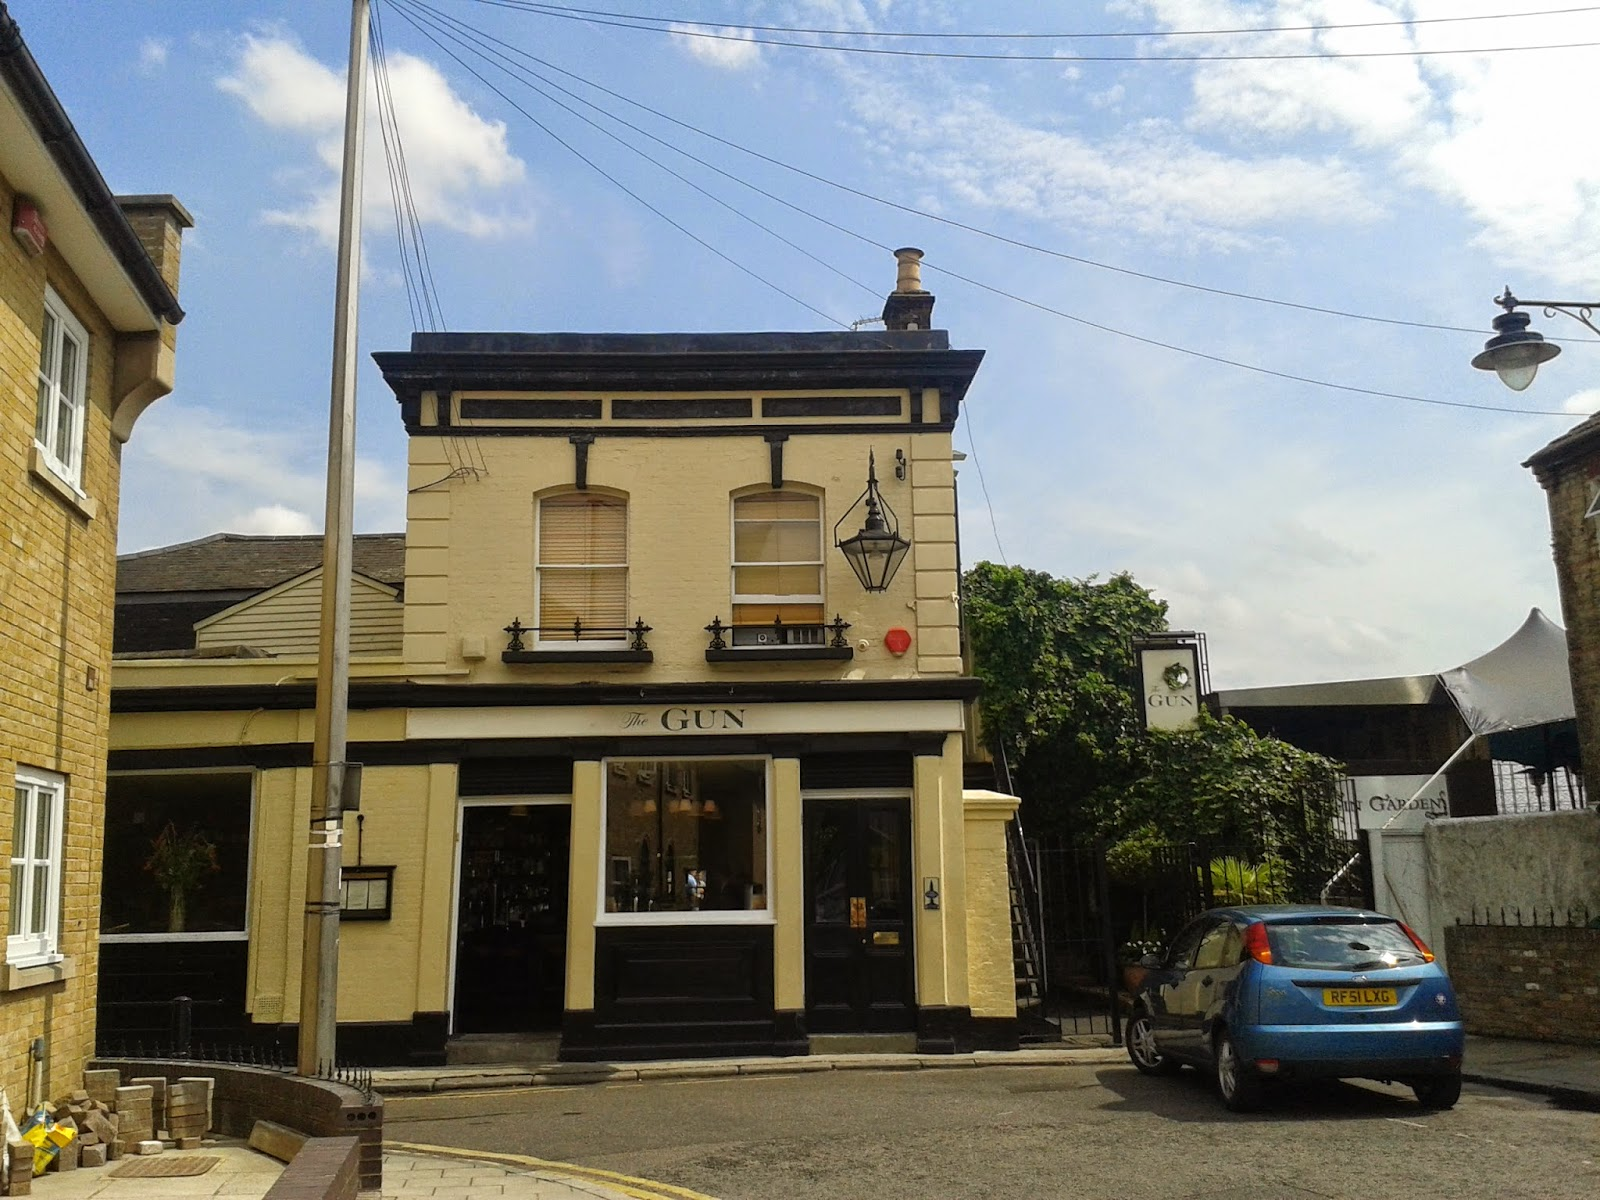 The Gun Docklands Pie Review